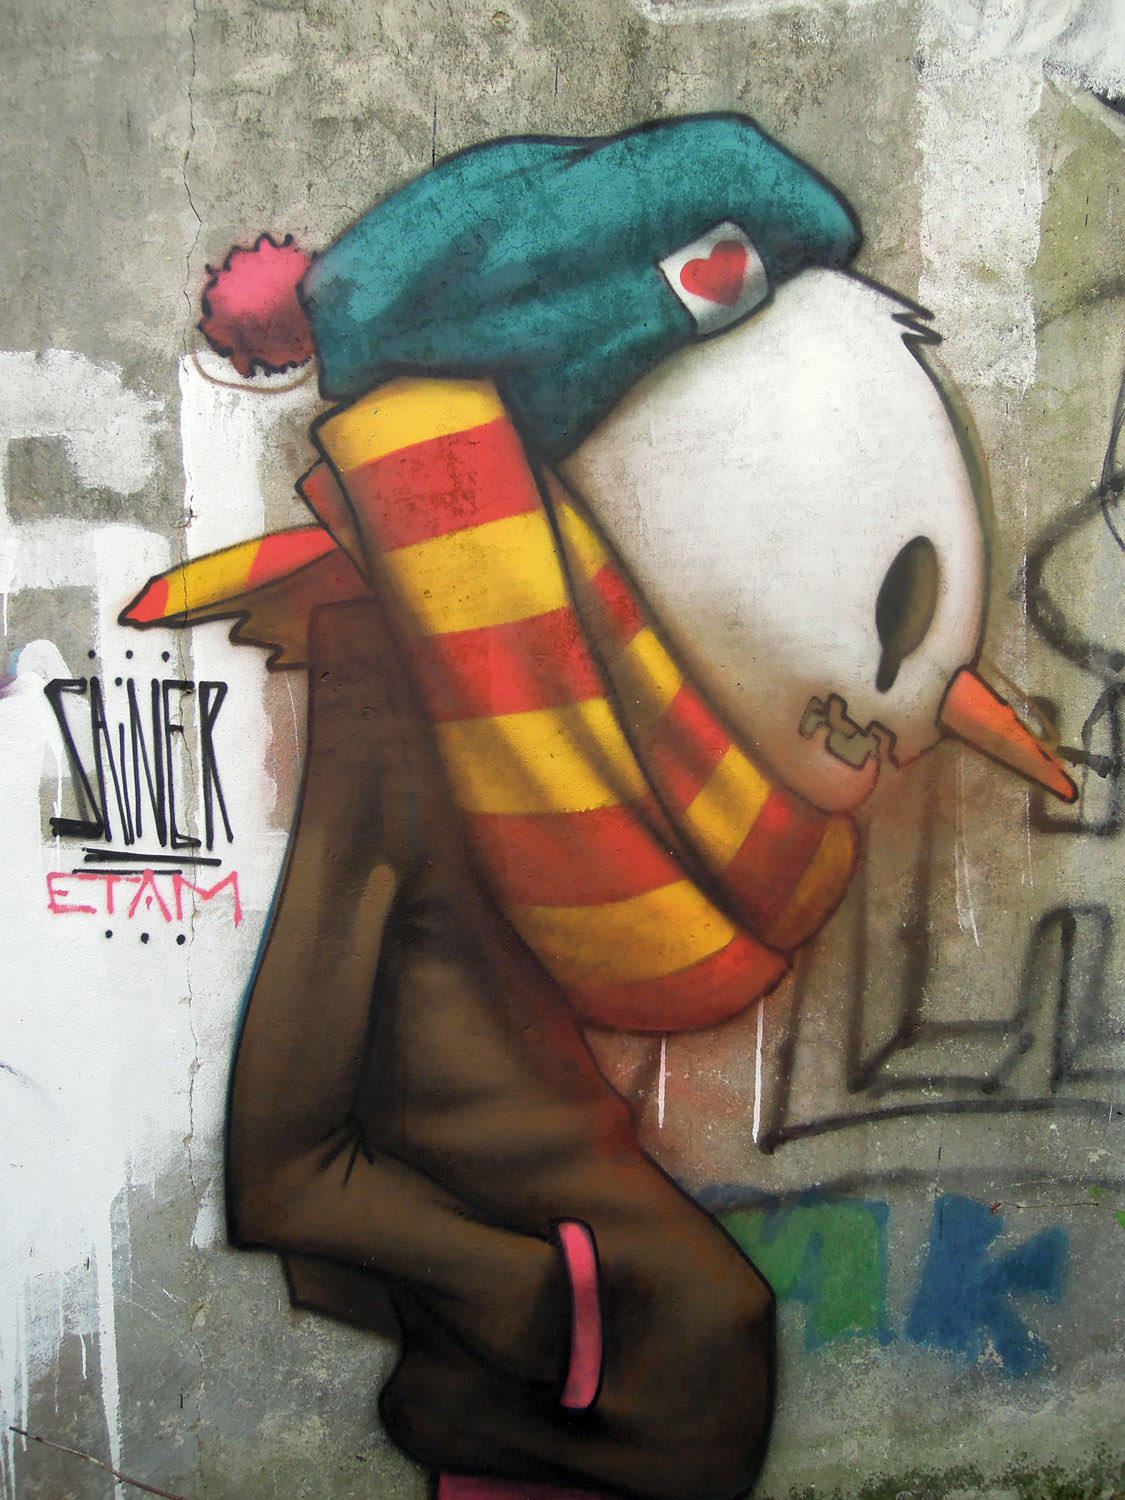 snowman head graffiti street art vandalism sainer etam cru wall painting : graffiti wall painting art - www.pureclipart.com